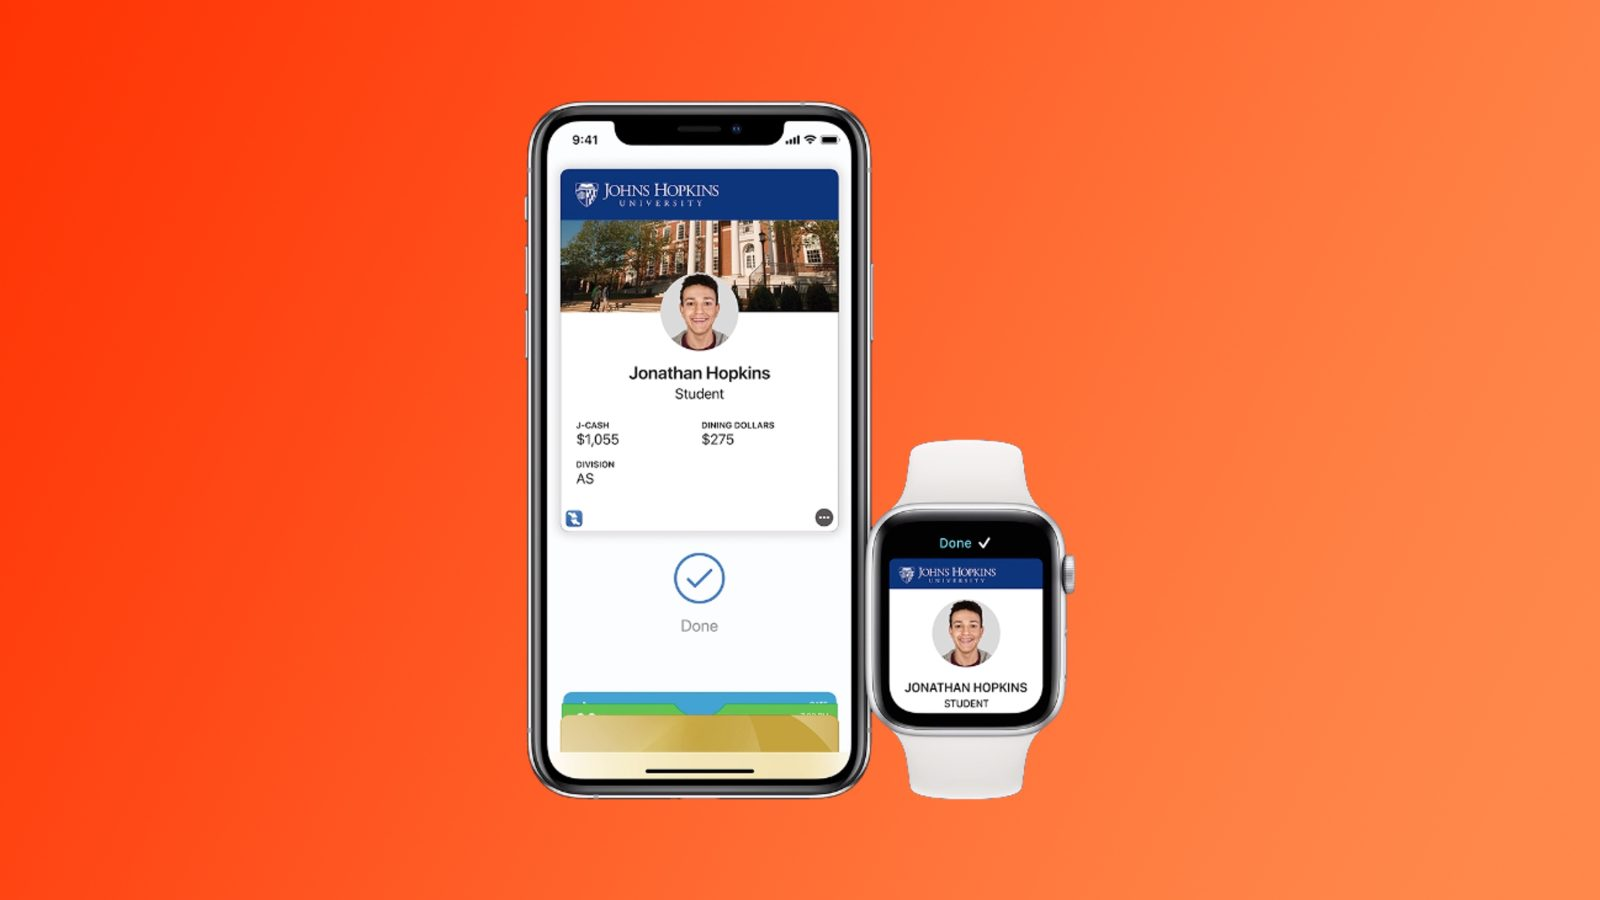 Student ID support in Apple Wallet expands to Johns Hopkins University